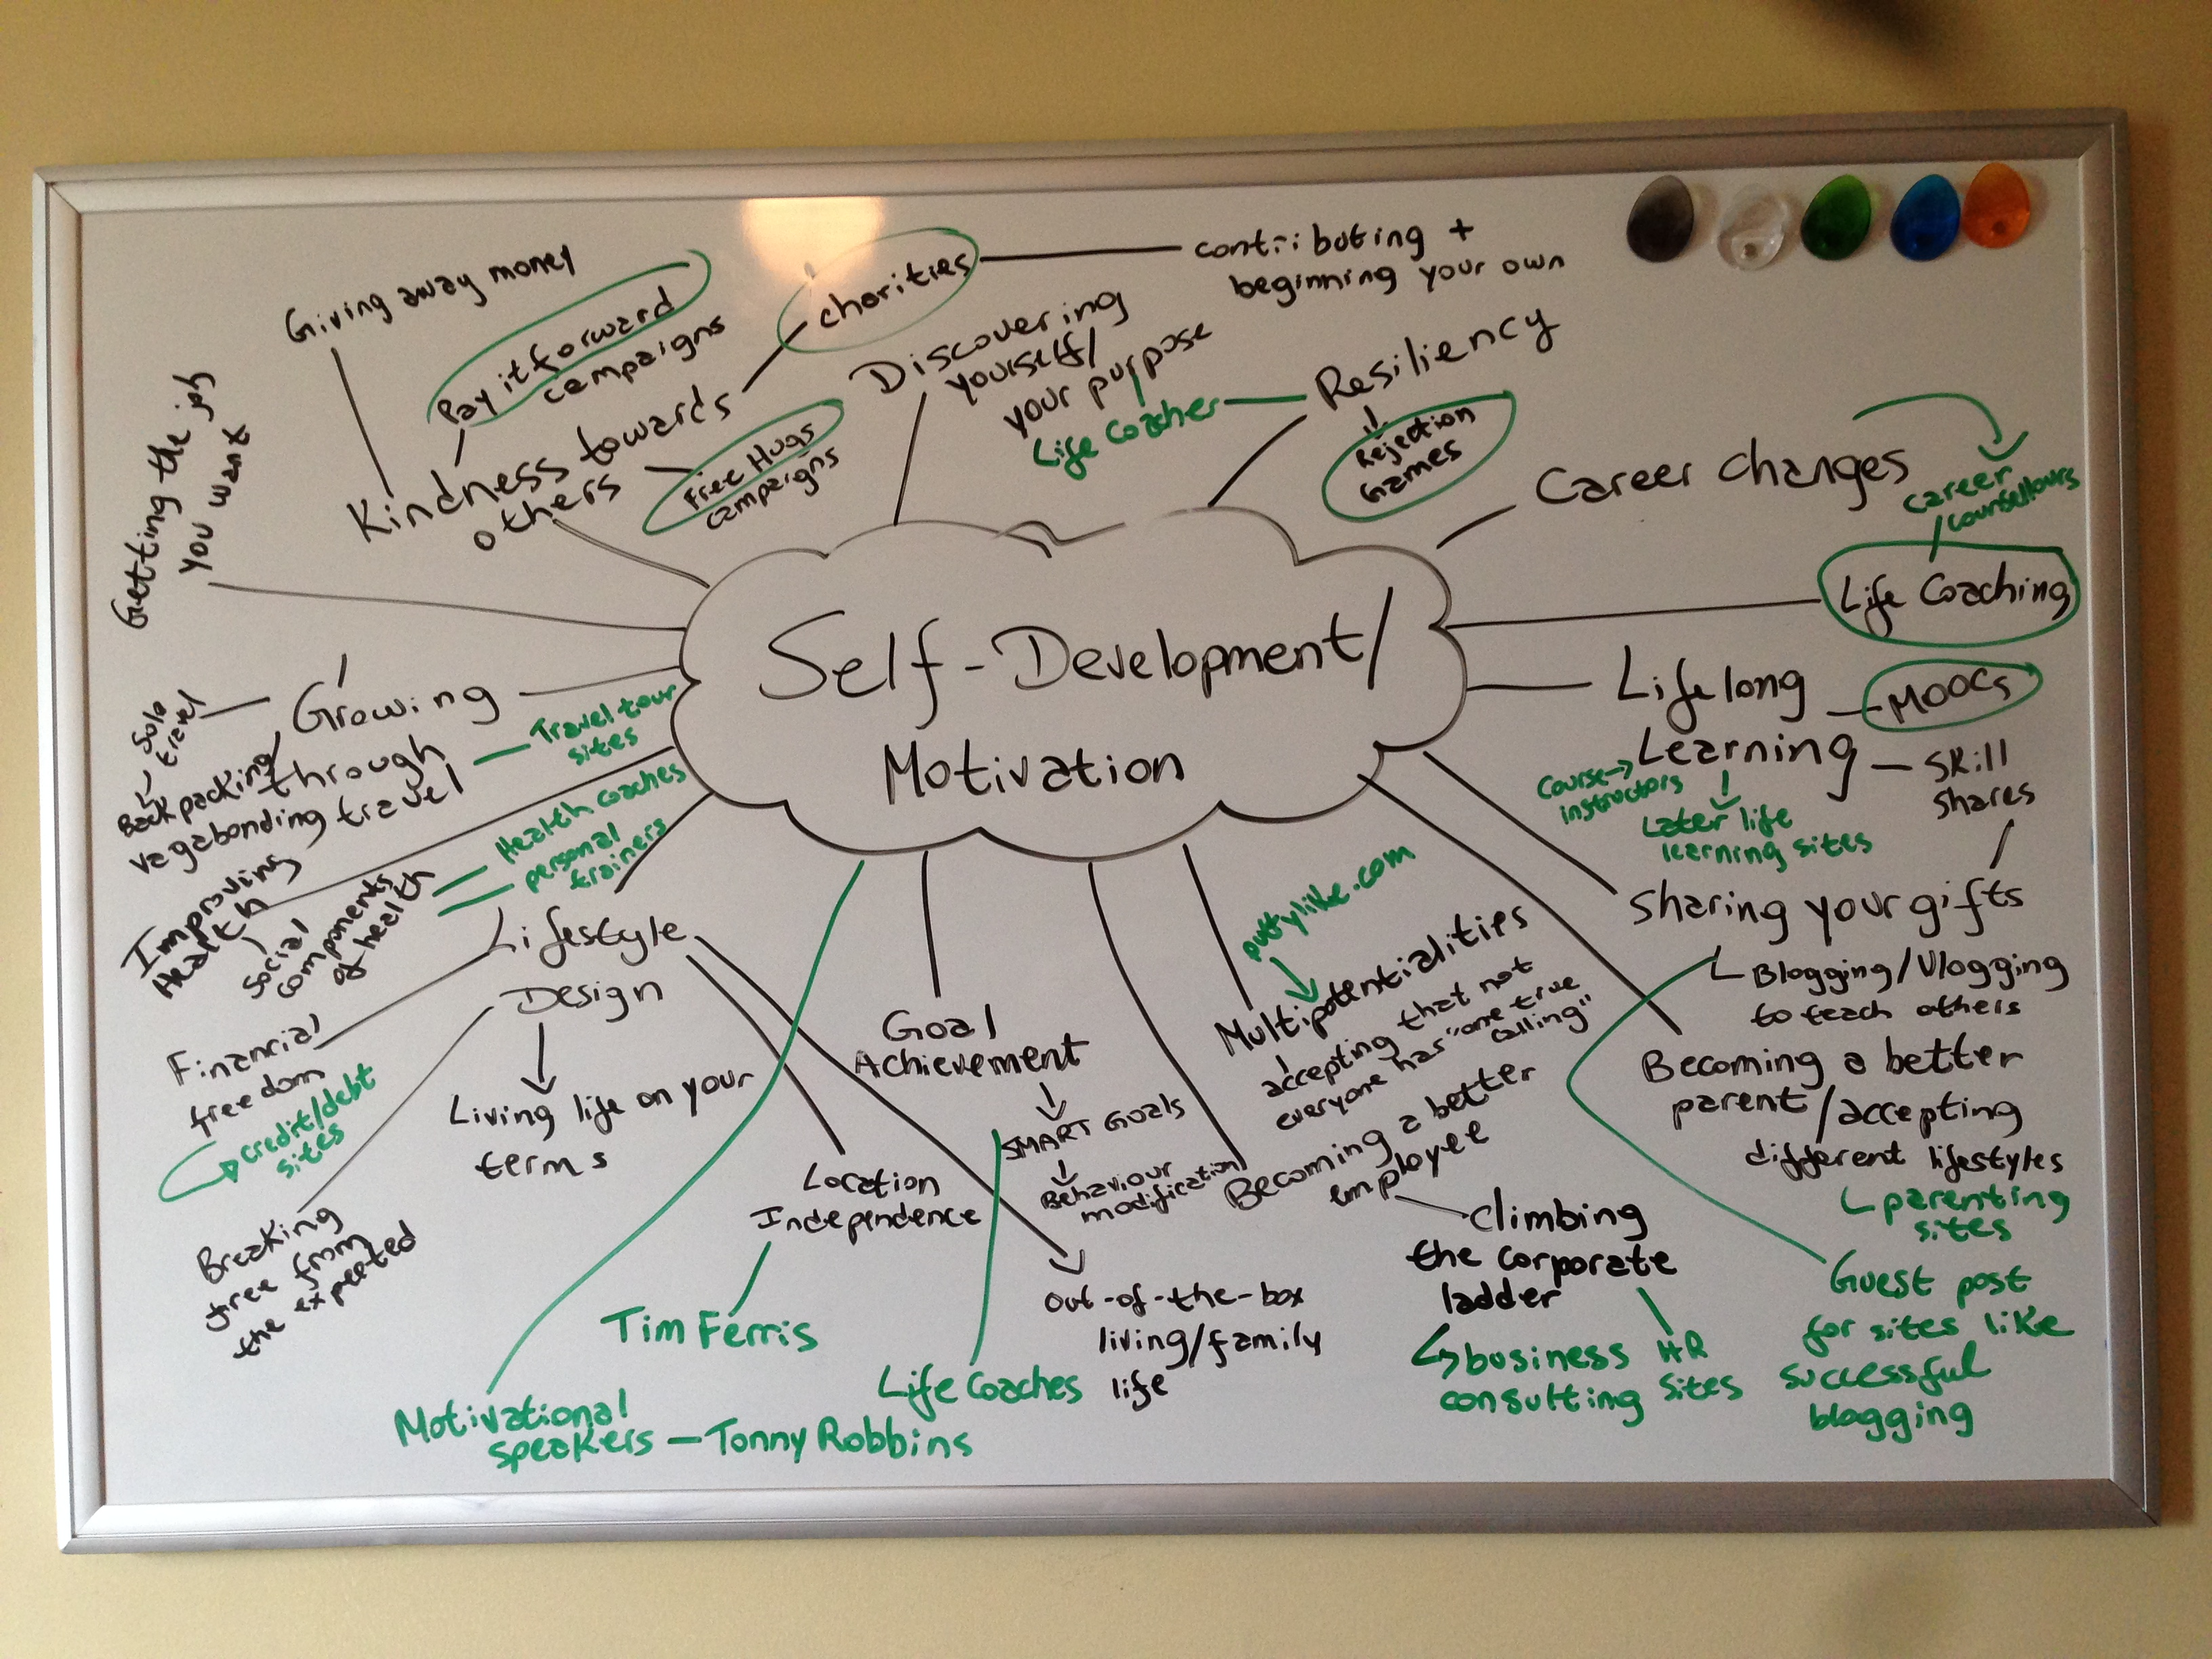 Niche diversification mind map: self-developent. A white dry-erase board shows the words self-development/motivation in the center, with several words related to the main topic connected to it by lines.